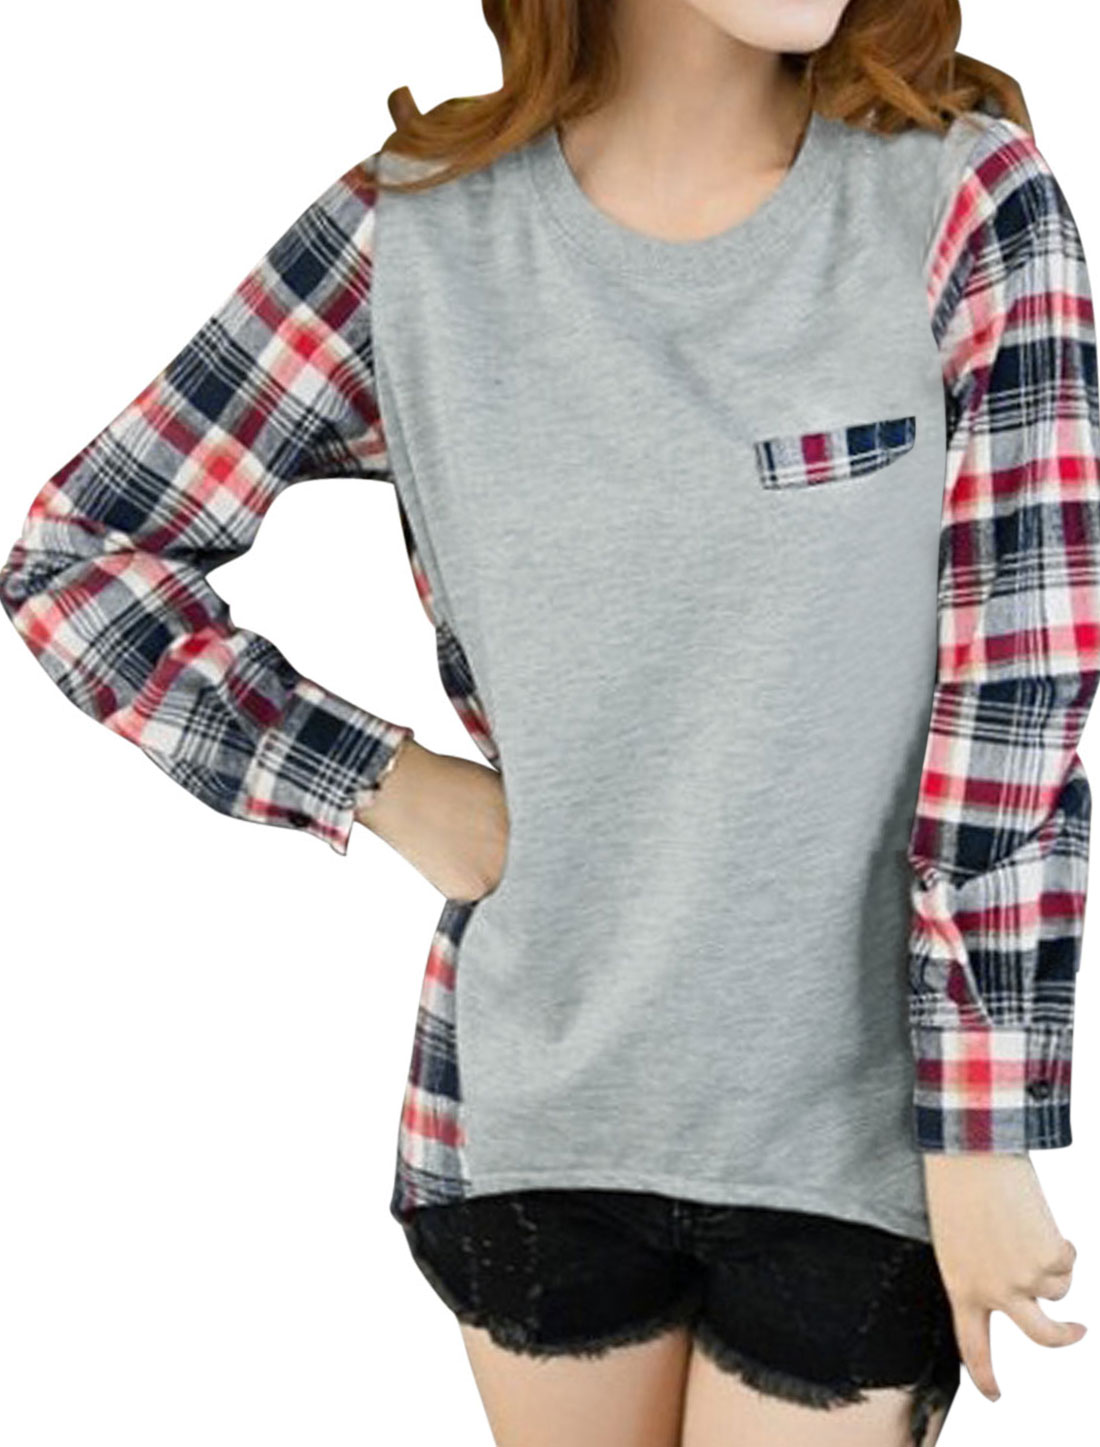 Women Stripes Plaids Pattern Spliced Asymmetric Hem Casual Top Light Gray M